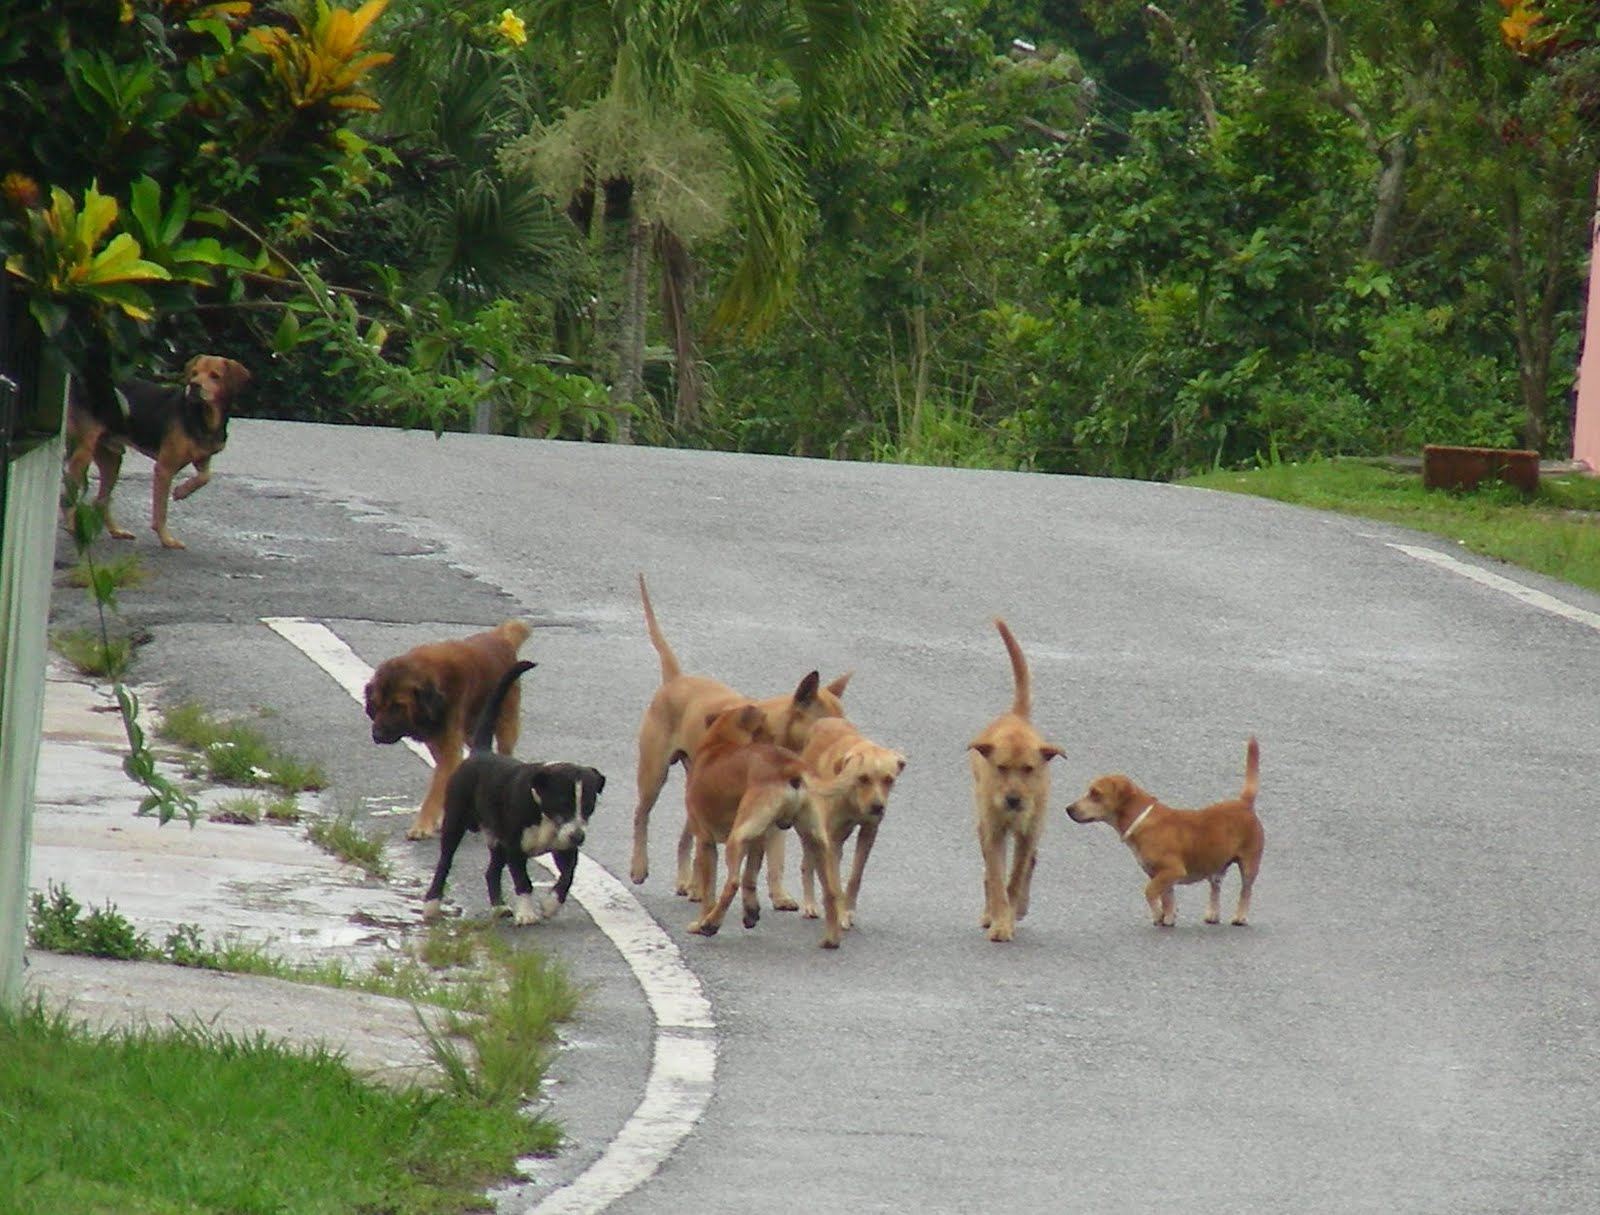 Let's talk dog: A Pack of Street Dogs